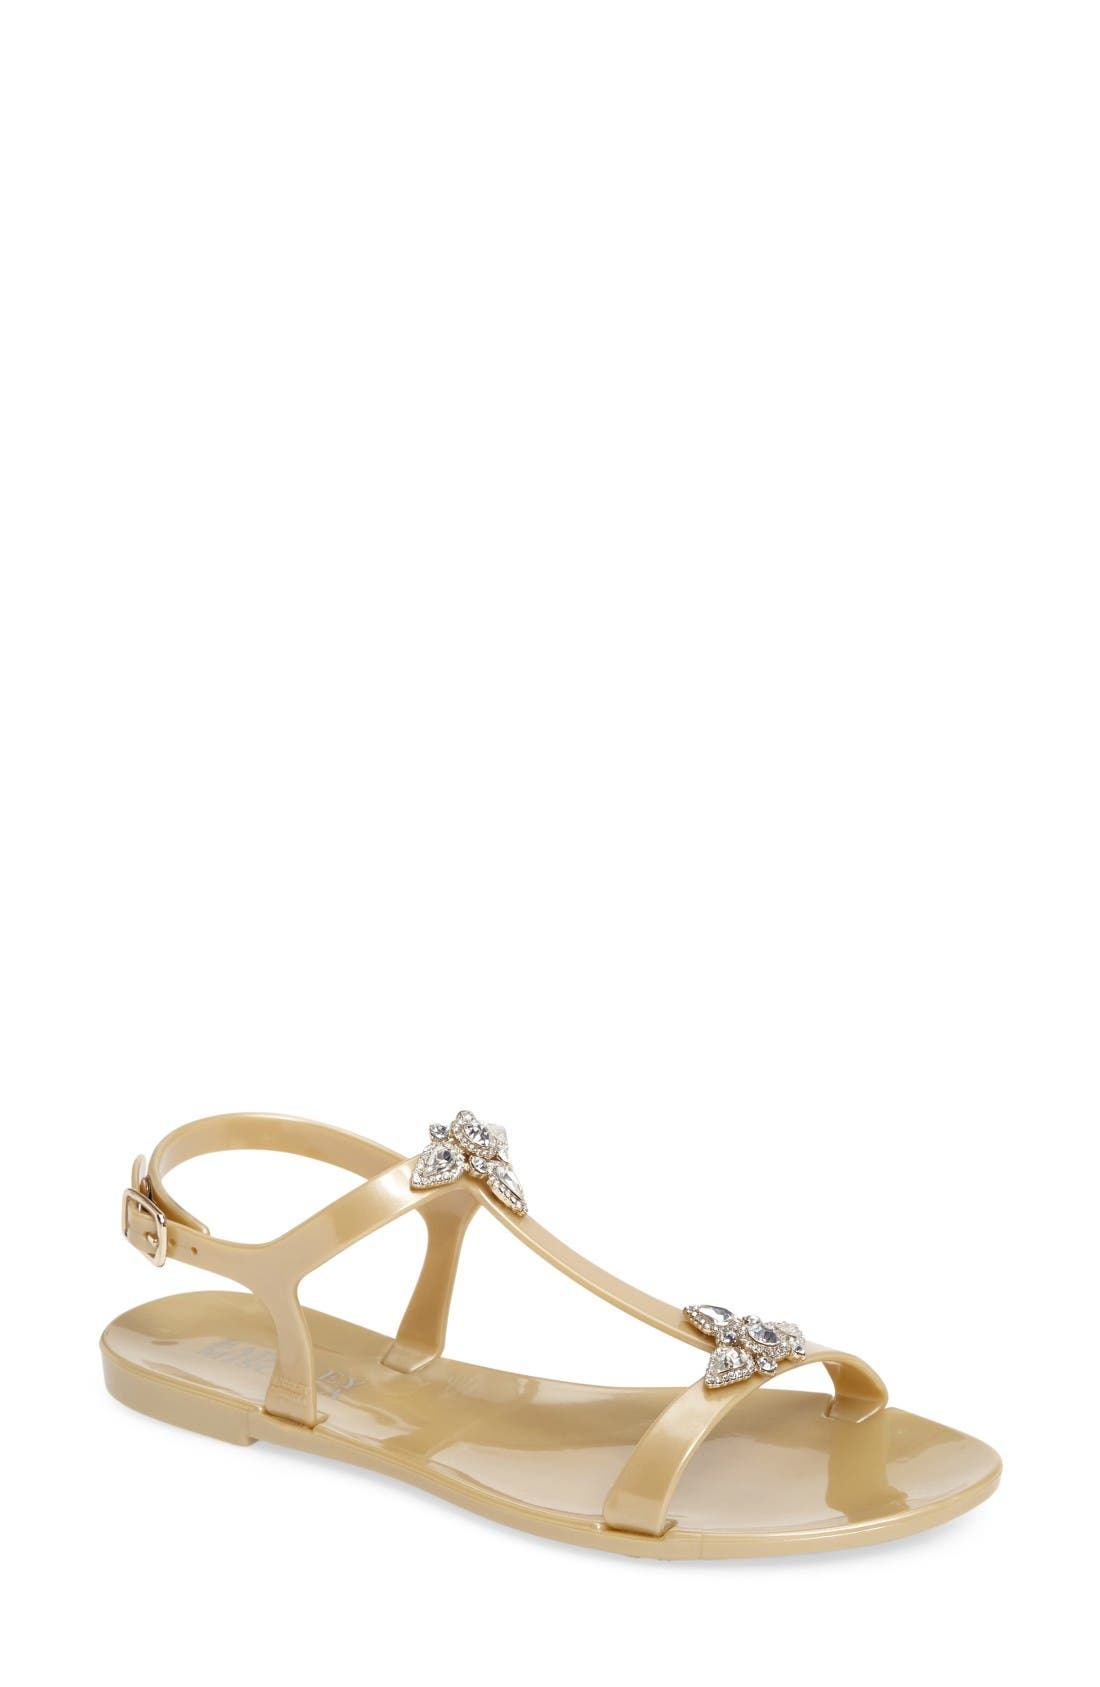 Main Image - Badgley Mischka Belize Crystal Embellished Flat Sandal (Women)